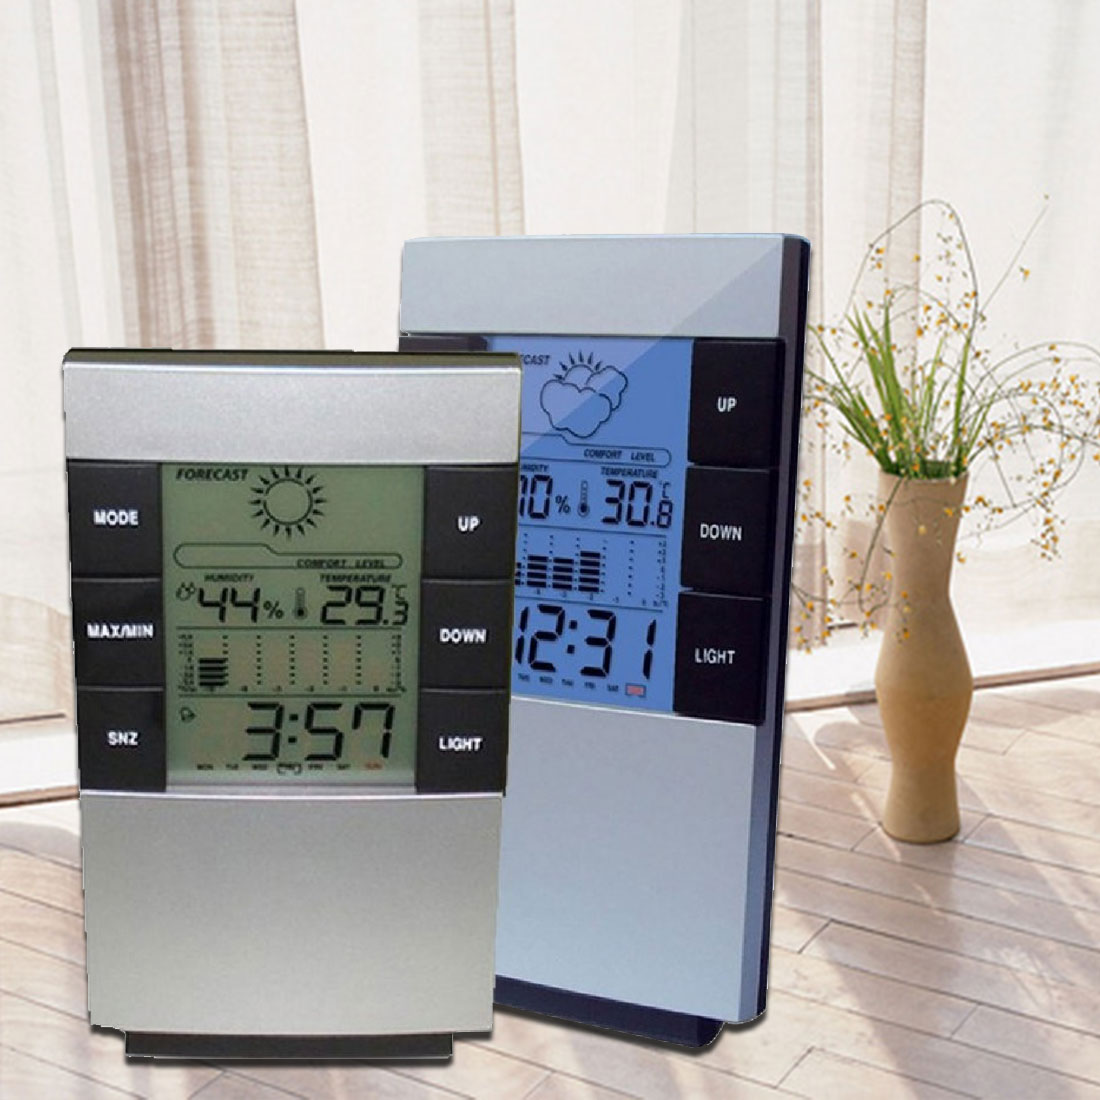 Multifunctional Home Humidity Thermometer LCD Digital Hygrometer Temperature Meter Clock Measurement Device multifunctional home humidity thermometer lcd digital hygrometer temperature meter clock measurement device